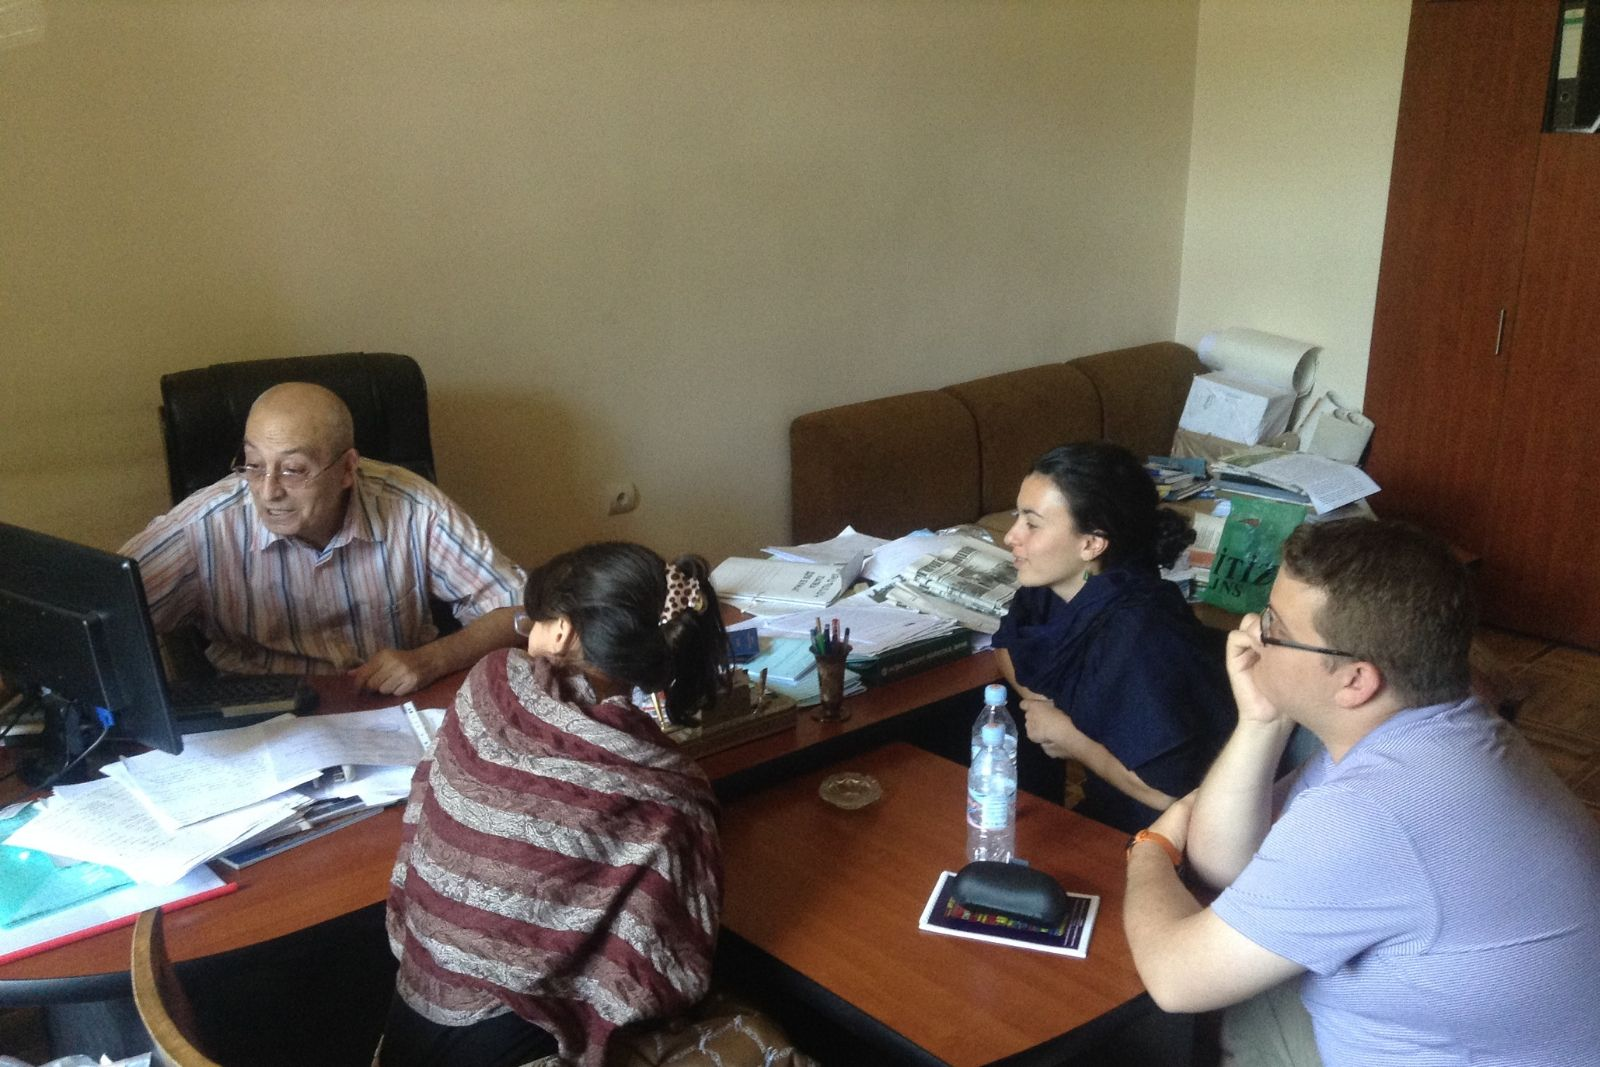 Prof. Pavel Avetisyan presents the latest archaeological discoveries in Armenia to the participants of Armenian Studies summer school 2014.